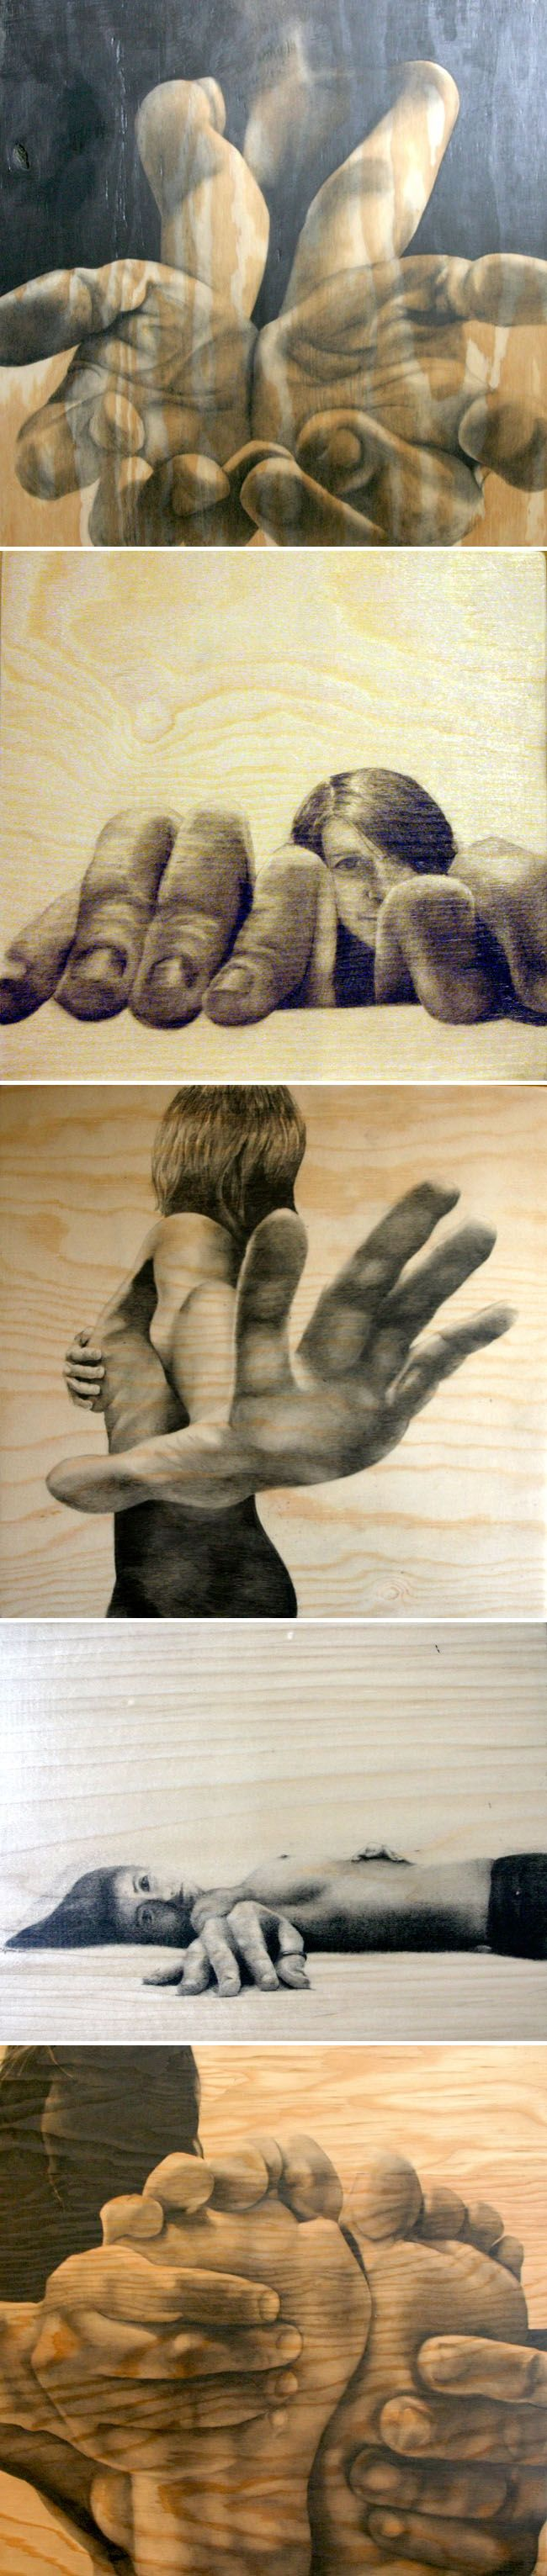 foreshortening project-photo and grid